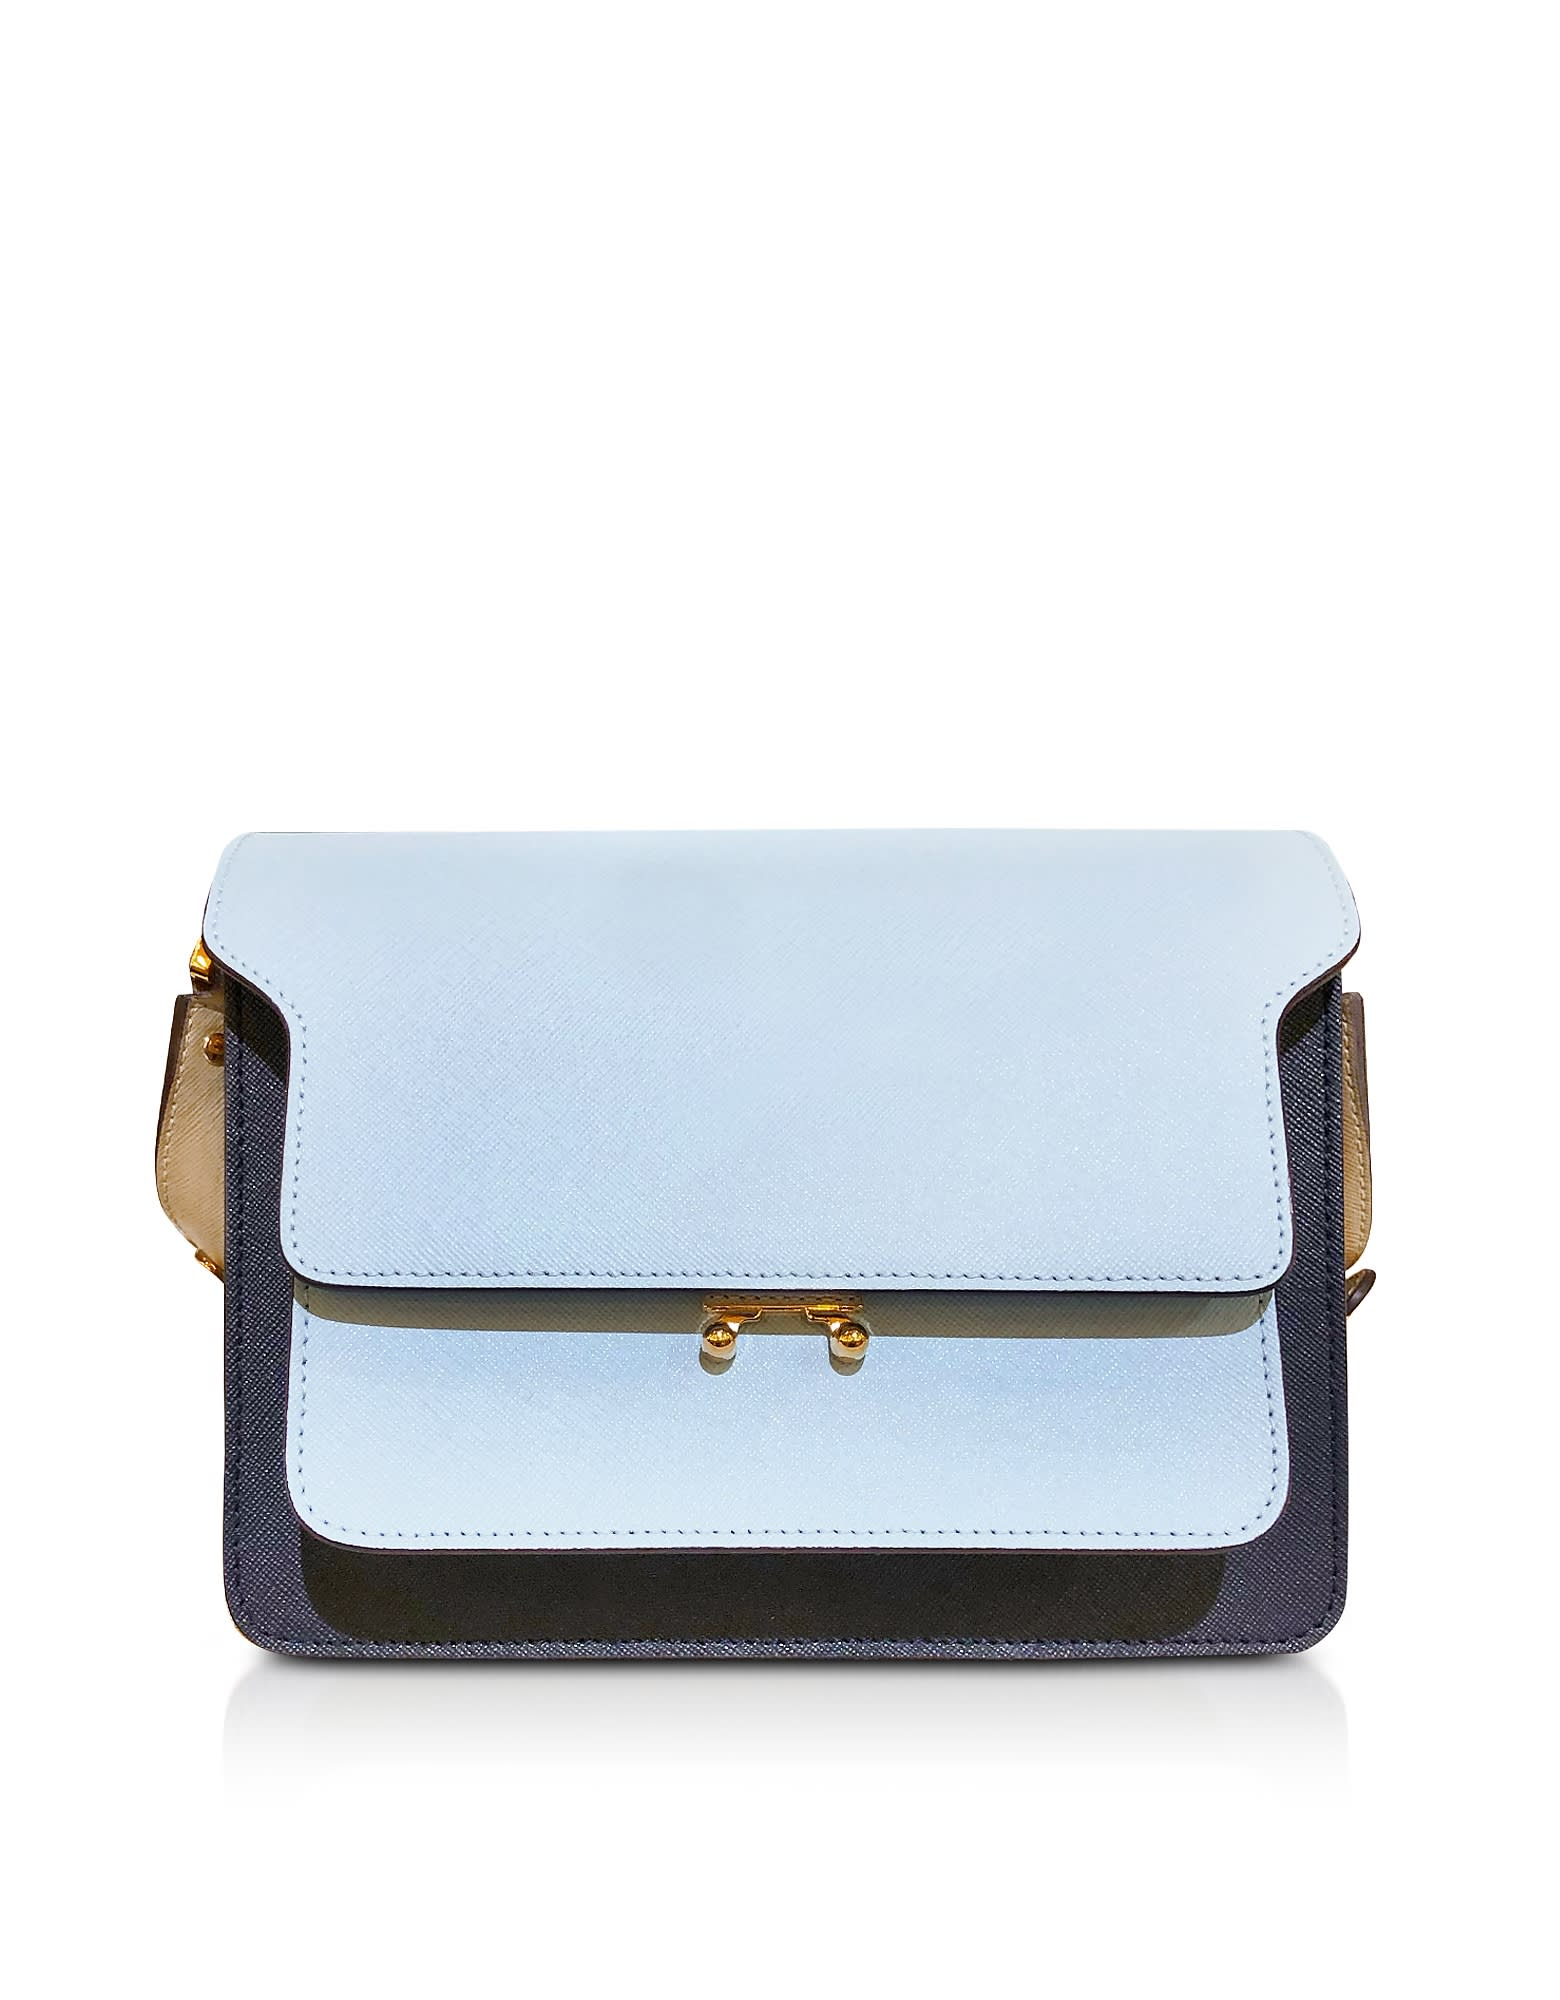 Marni COLOR BLOCK POWDER AND NAVY BLUE SAFFIANO LEATHER TRUNK BAG